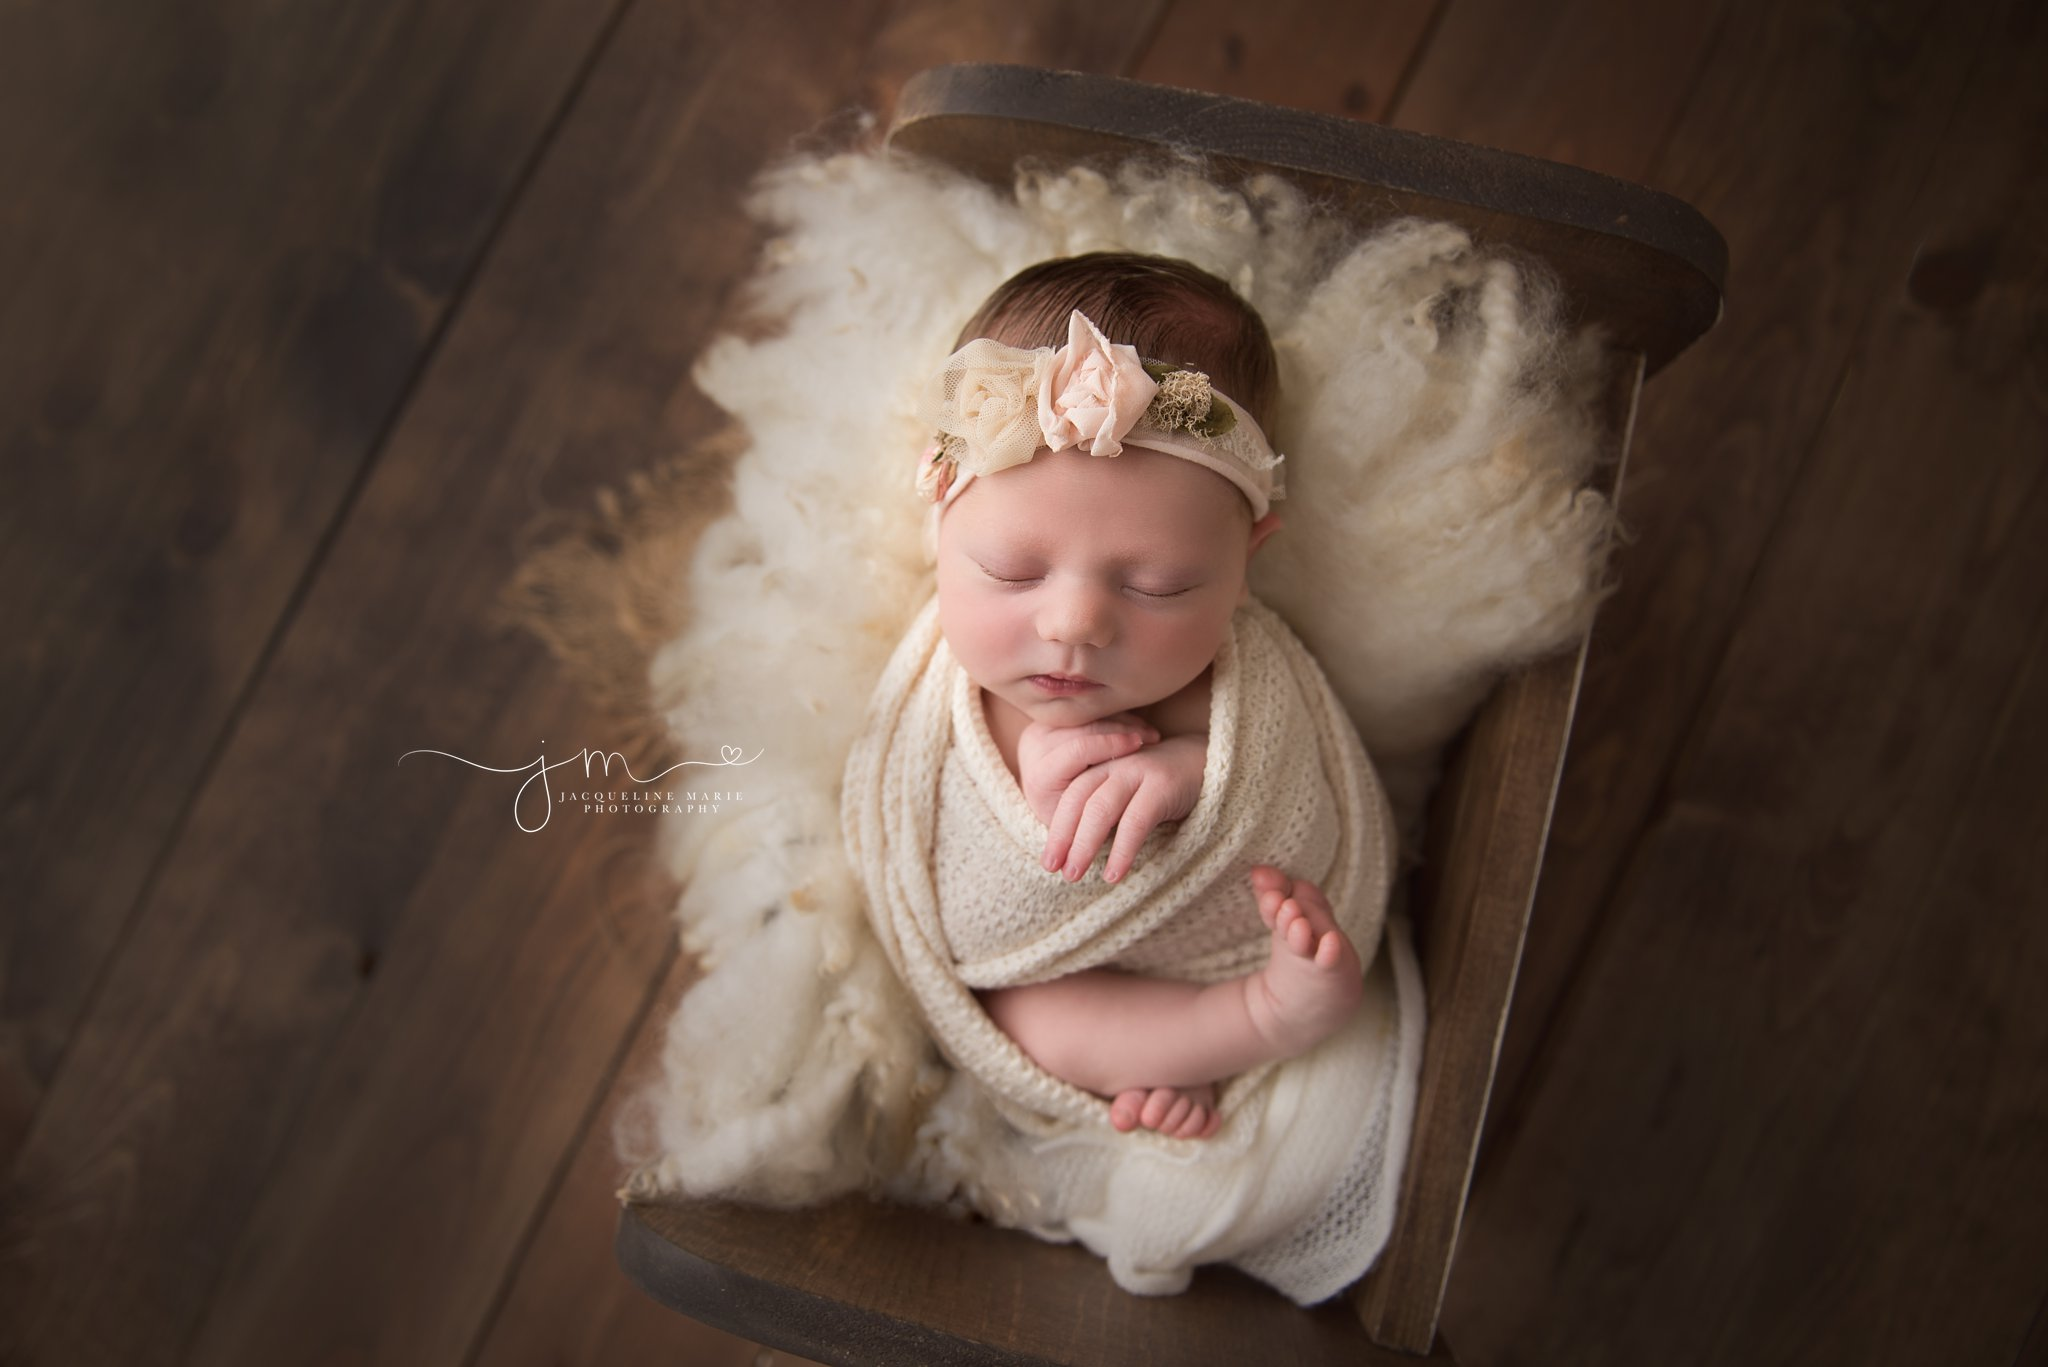 columbus ohio newborn baby girl is swaddled in cream wrap and laying in wood bed for newborn photography portraits at jacqueline marie photography studio